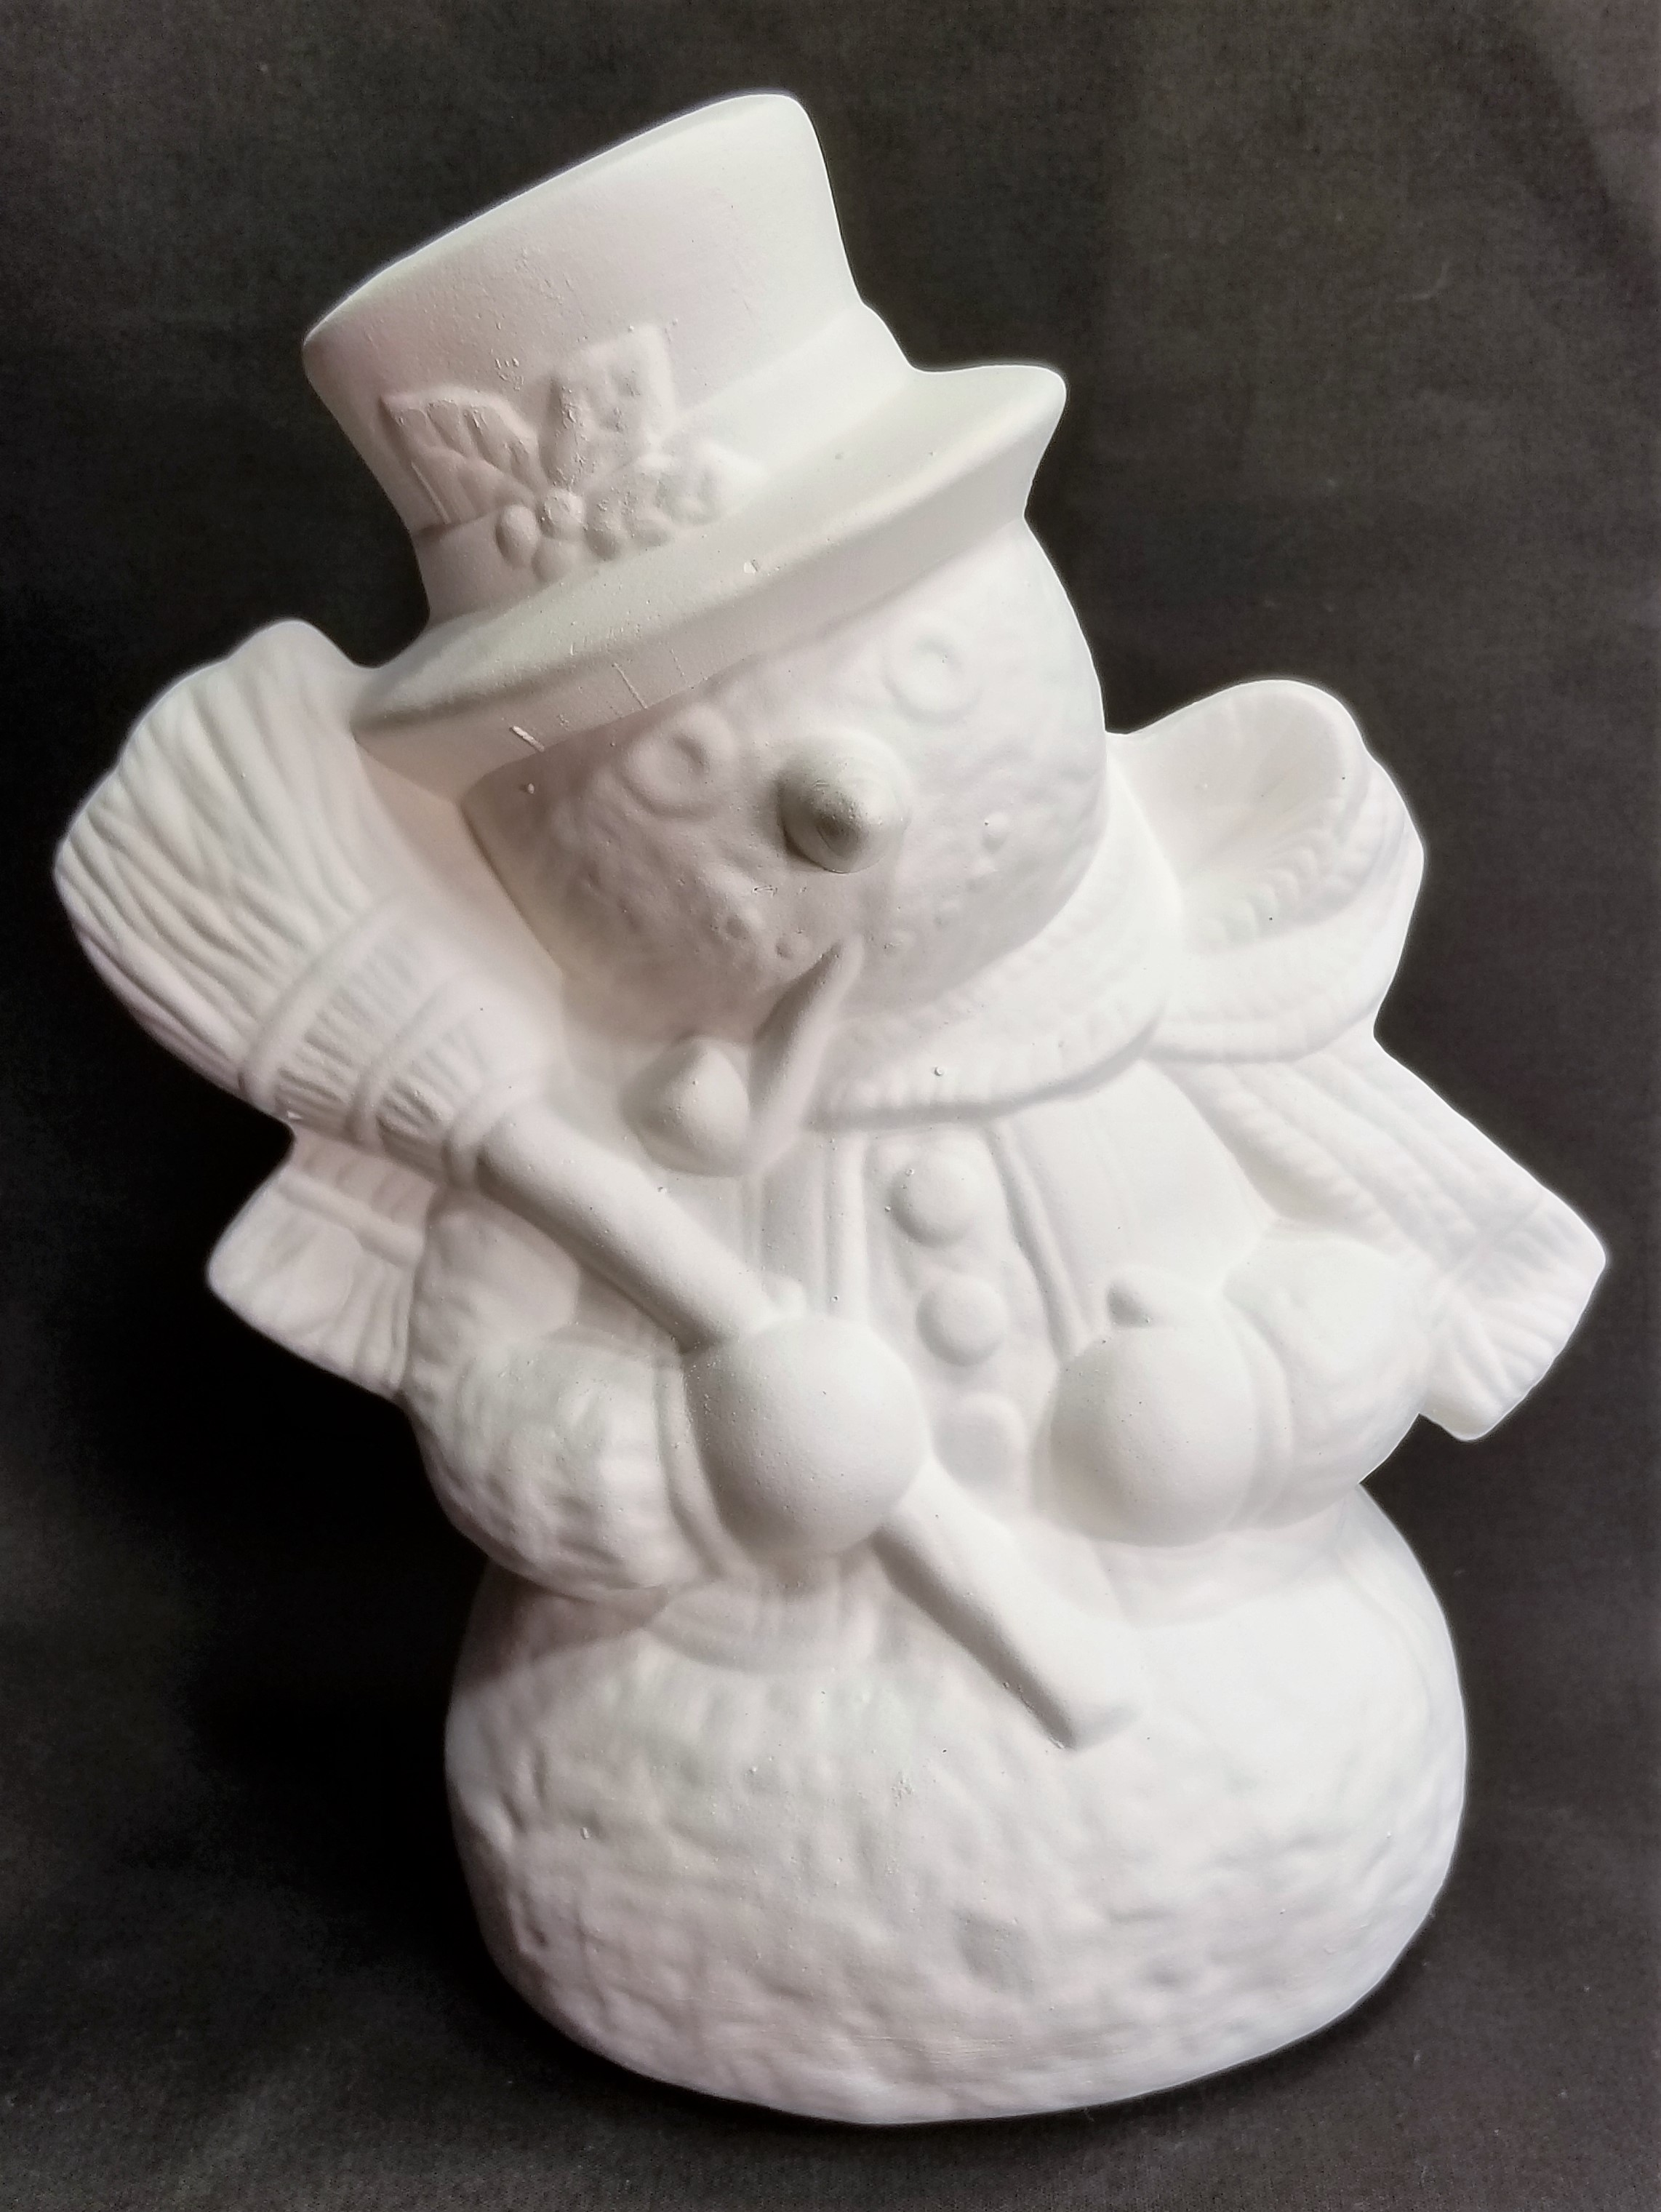 Snowman - Large with broom